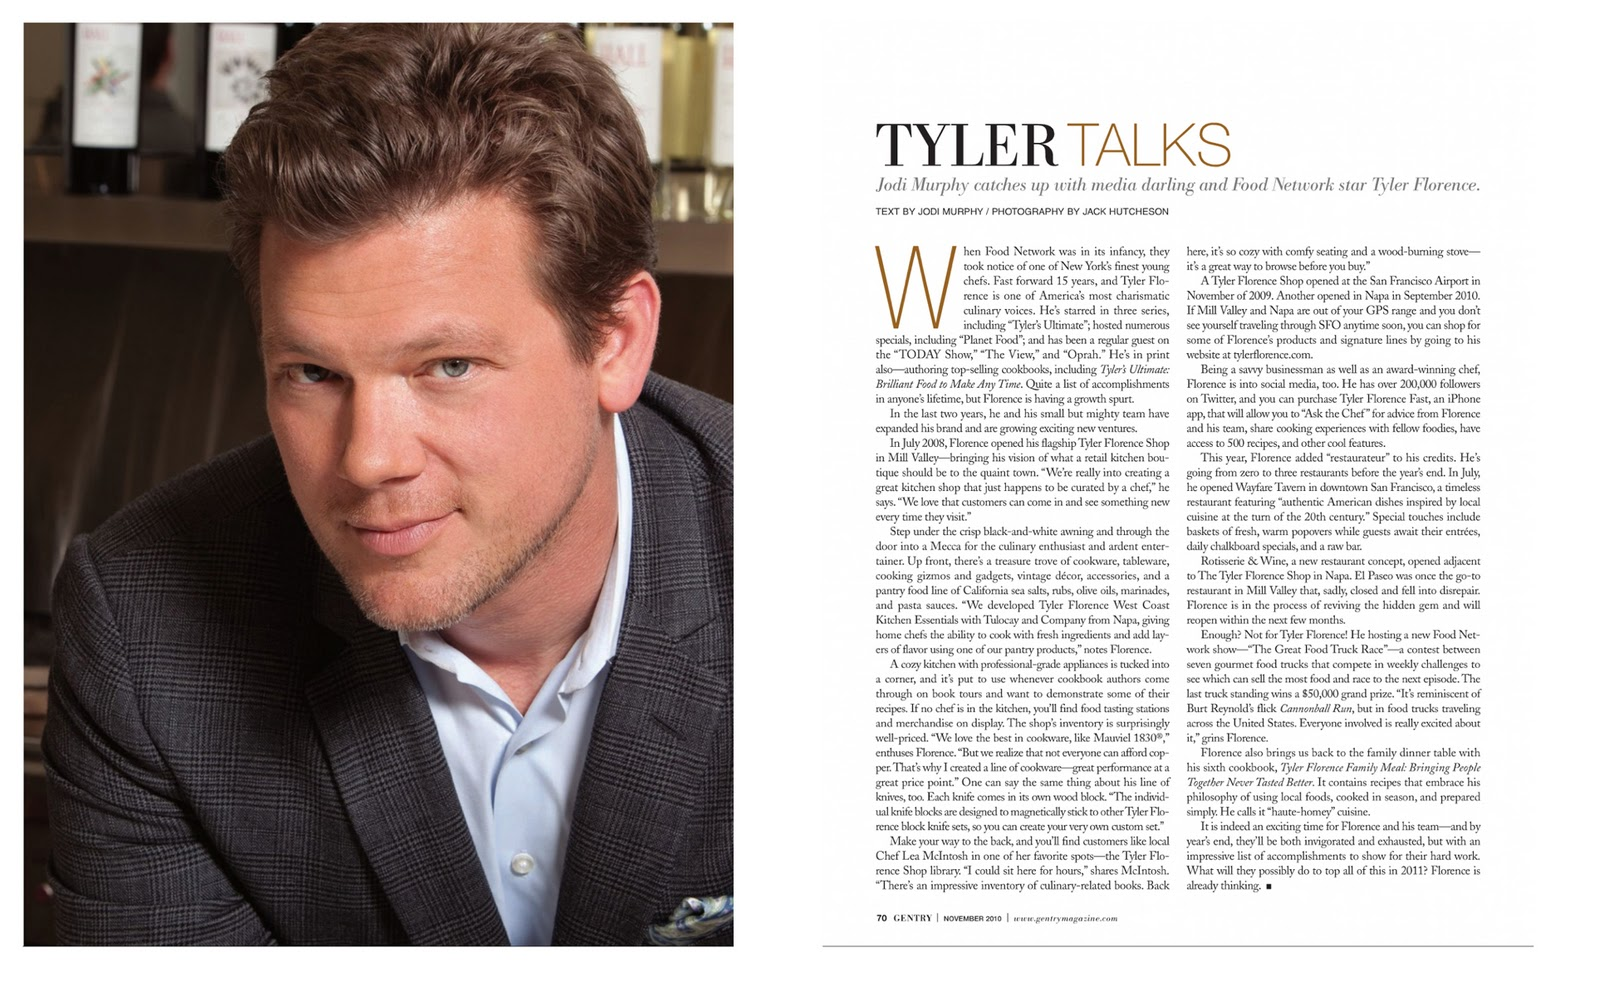 How to Hire Tyler Florence - Celebrity Chef Network